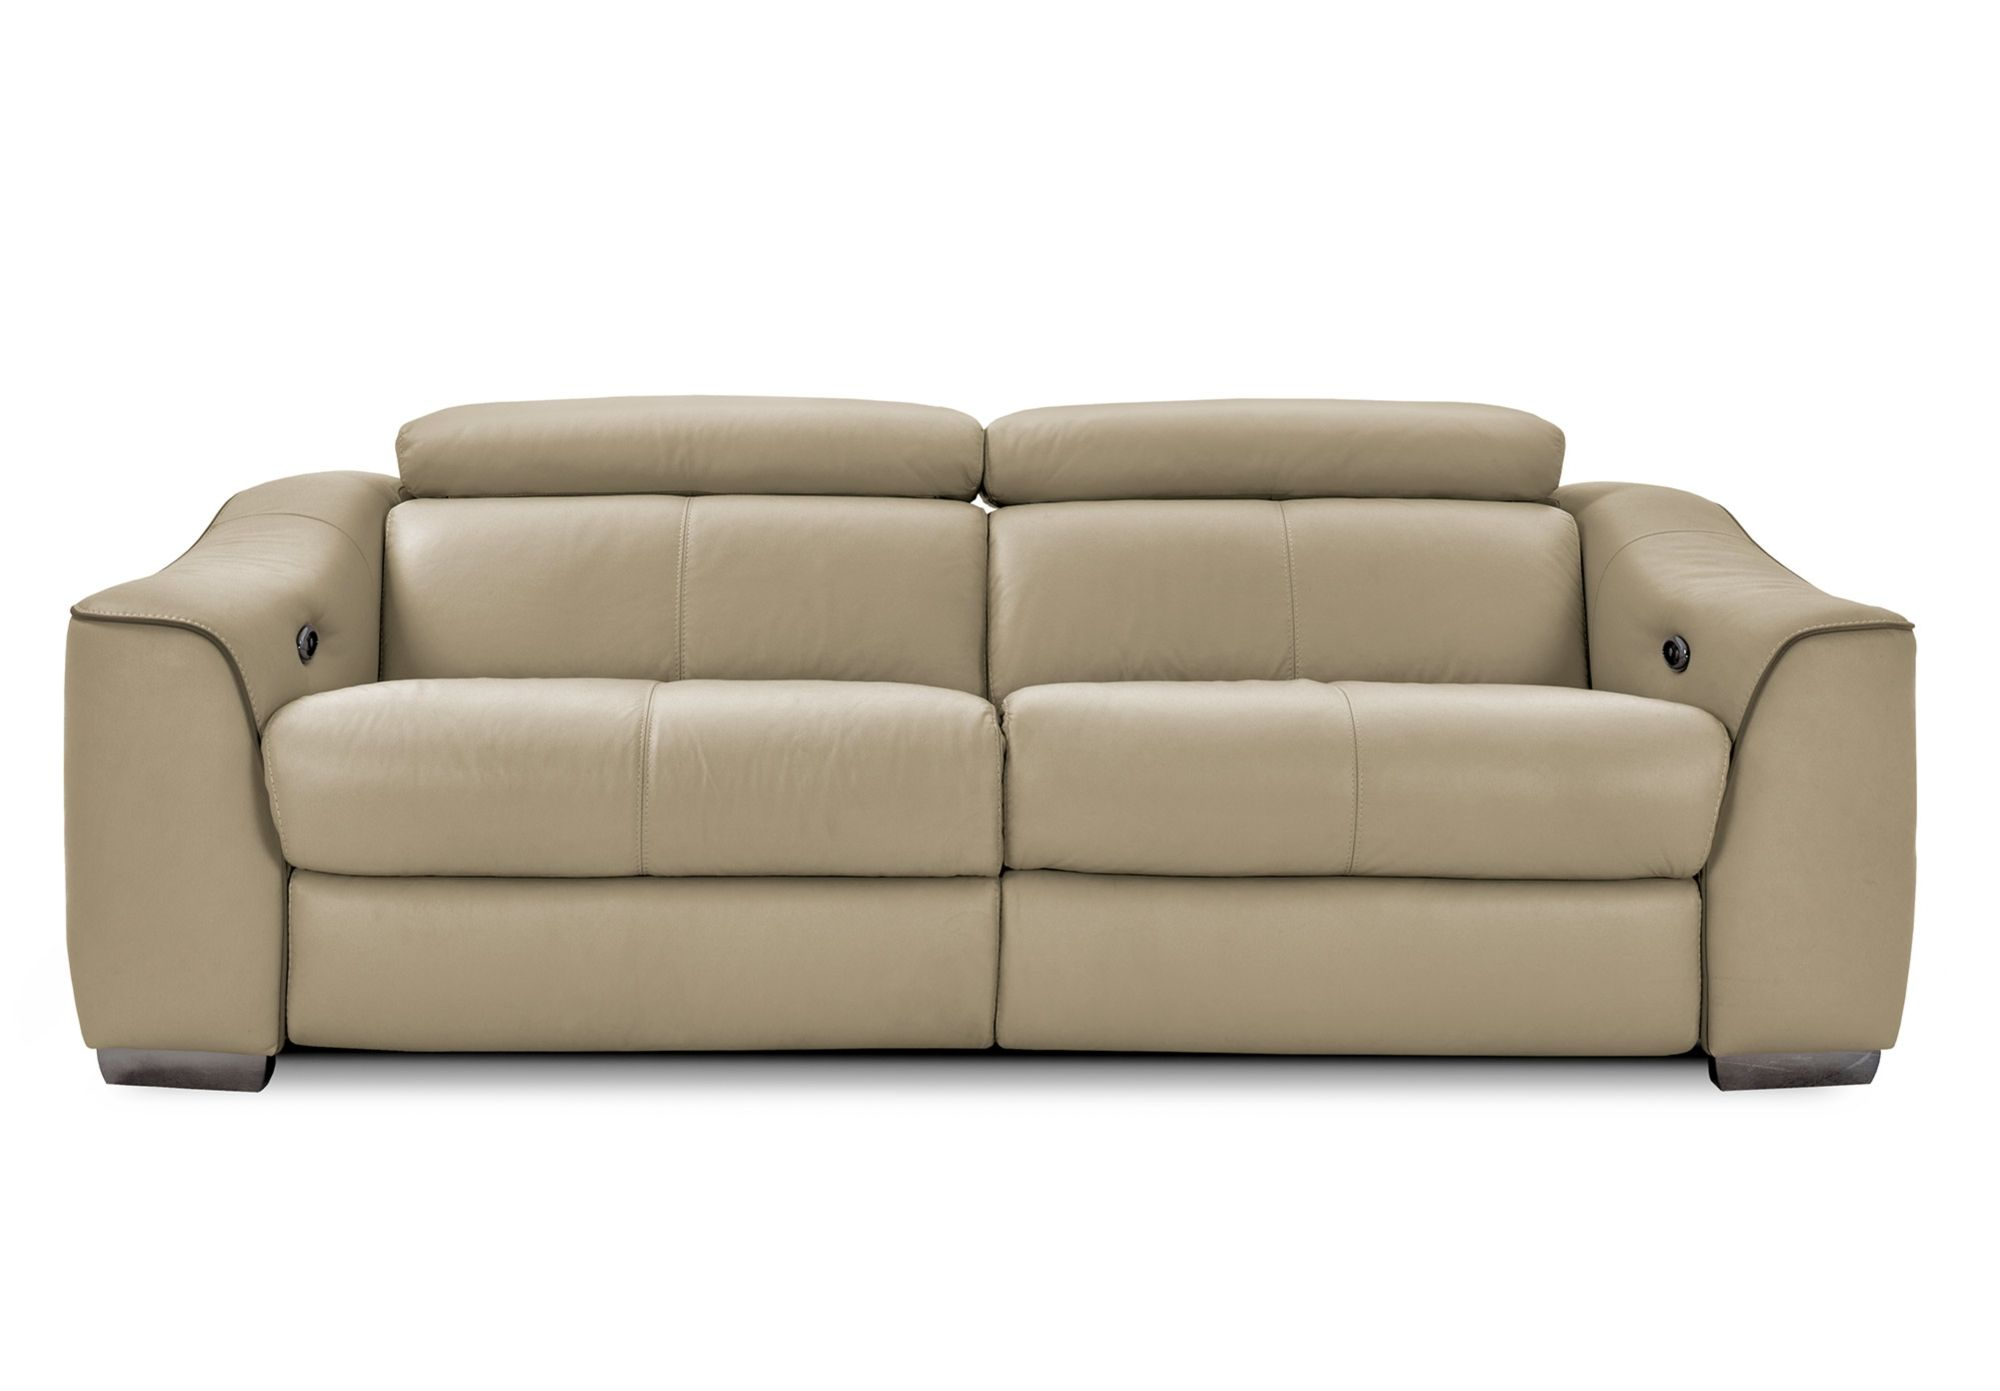 3 Seater Sofa Elixir Gorgeous Living Room Furniture From Furniture Village Sofa Leather Recliner 3 Seater Sofa